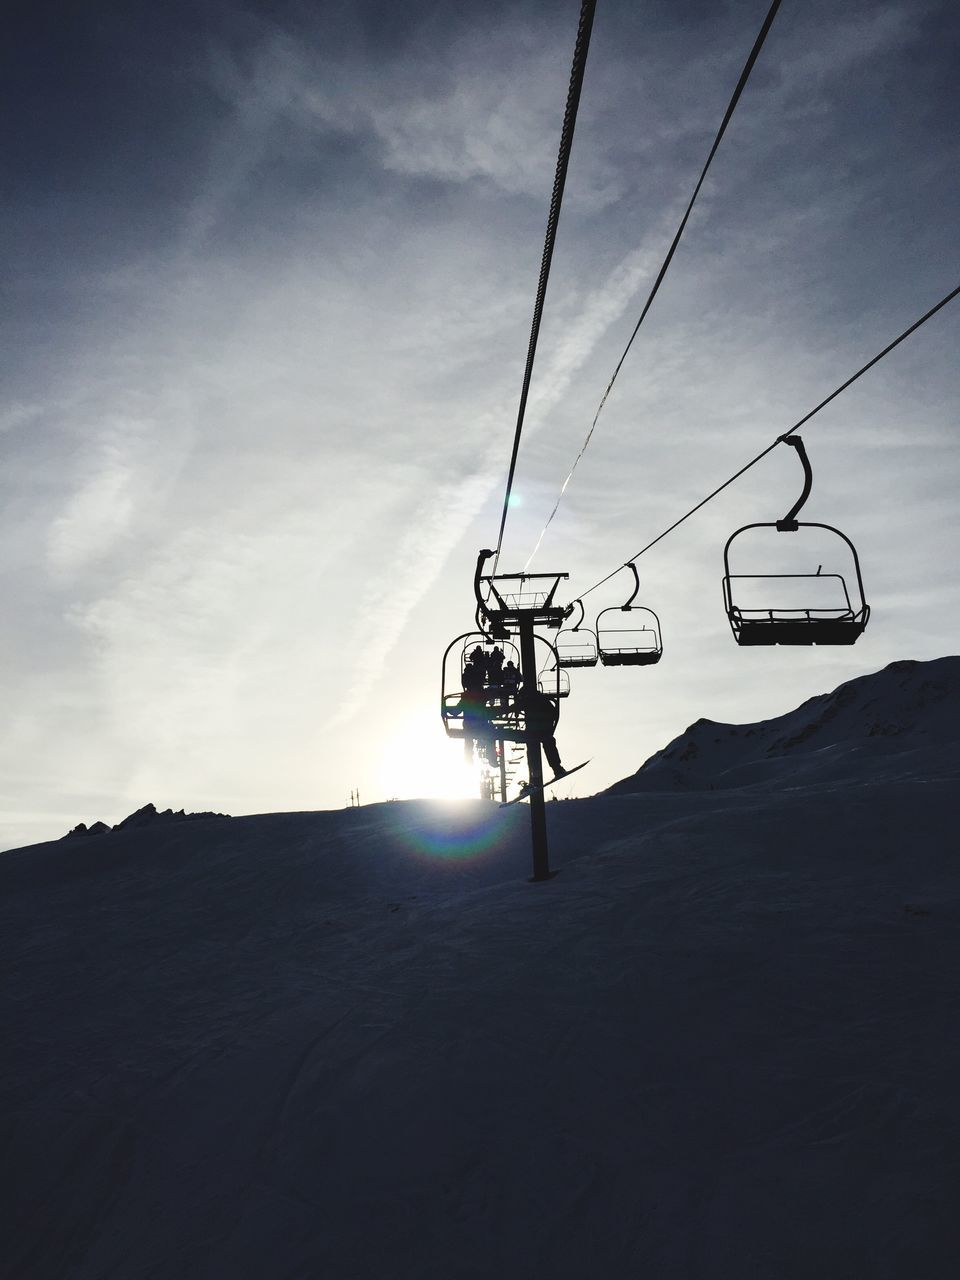 Low Angle View Of Ski Lift Over Snow Covered Mountain Against Sky